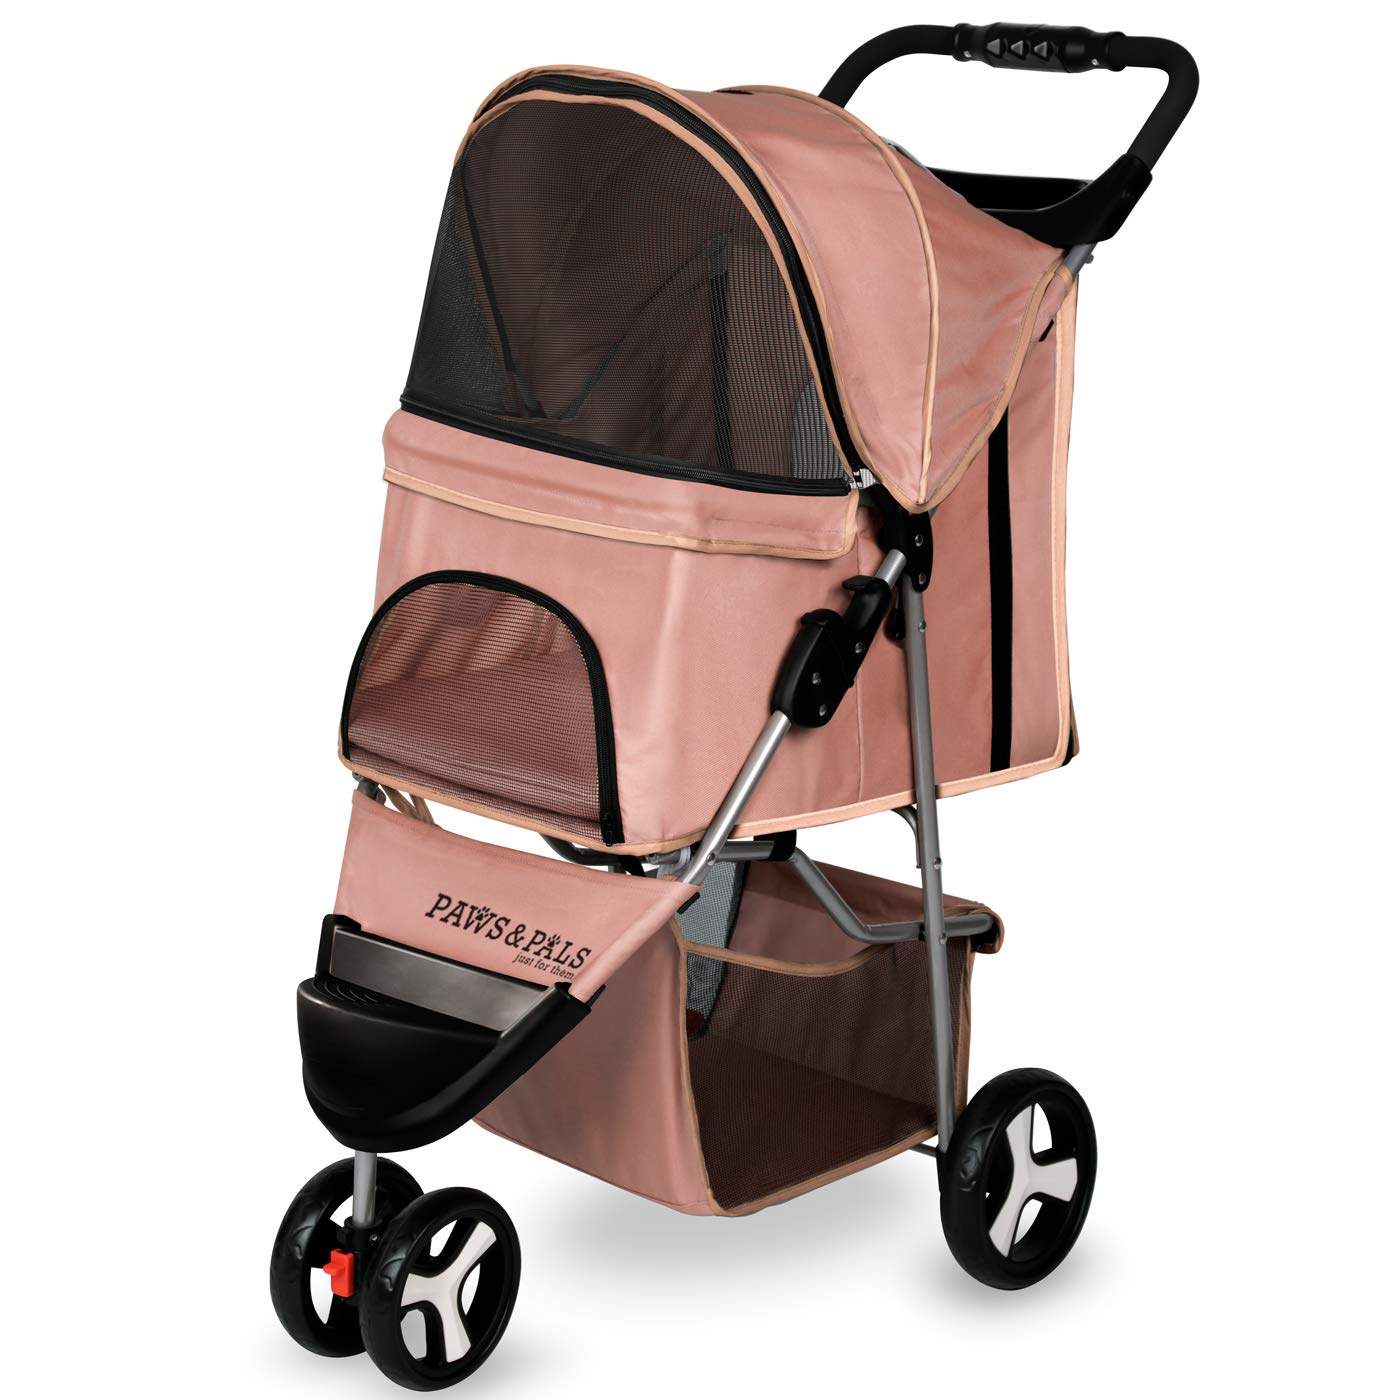 Dog Stroller – Pet Strollers for Small Medium Dogs & Cats – 3 Wheeler Elite Jogger – Carriages Best for Cat & Large…